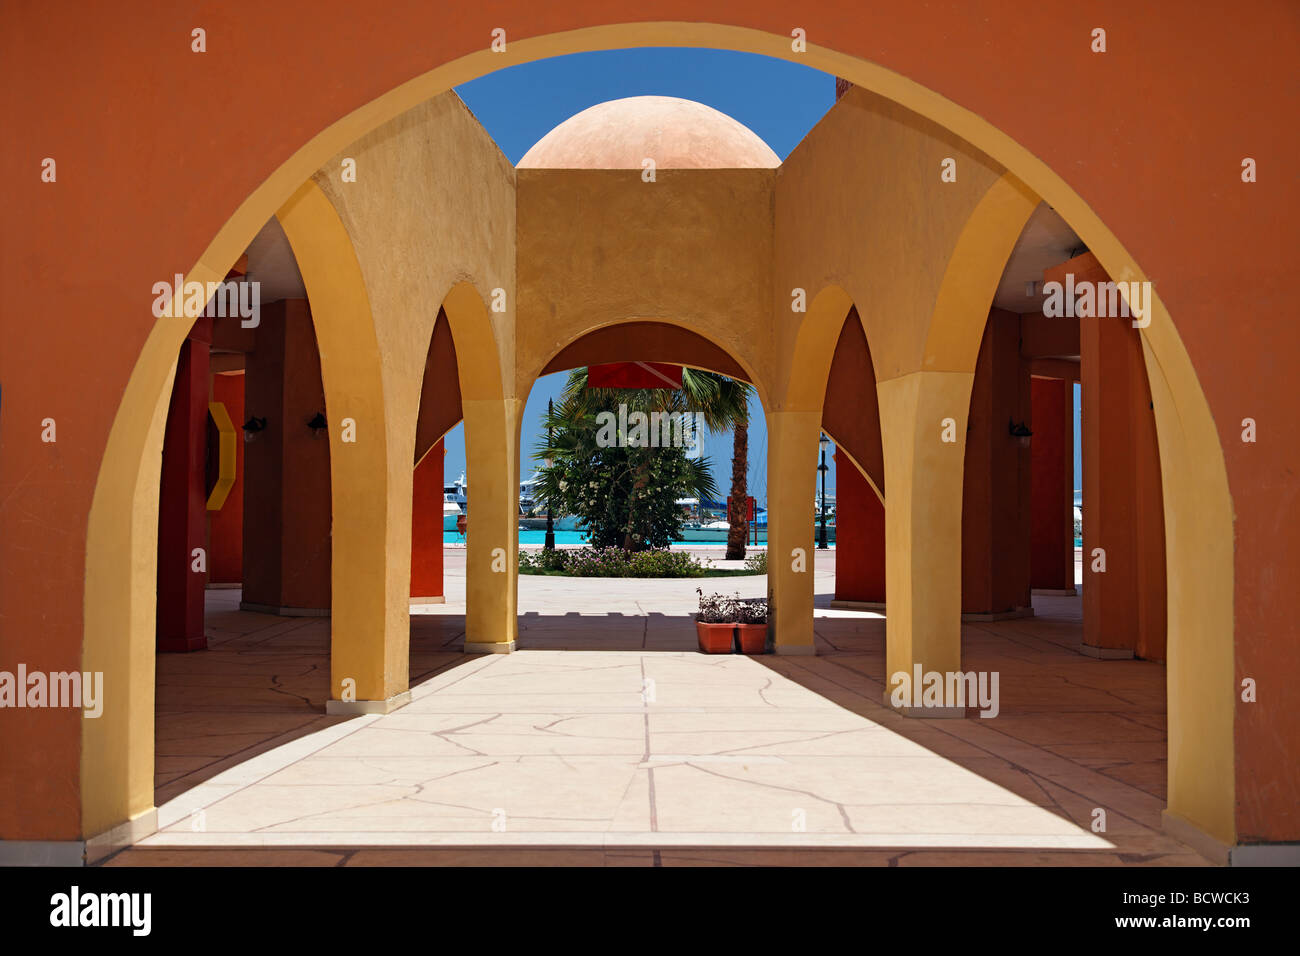 Courtyard, traditional market, Souk, marina, Hurghada, Egypt, Red Sea, Africa Stock Photo